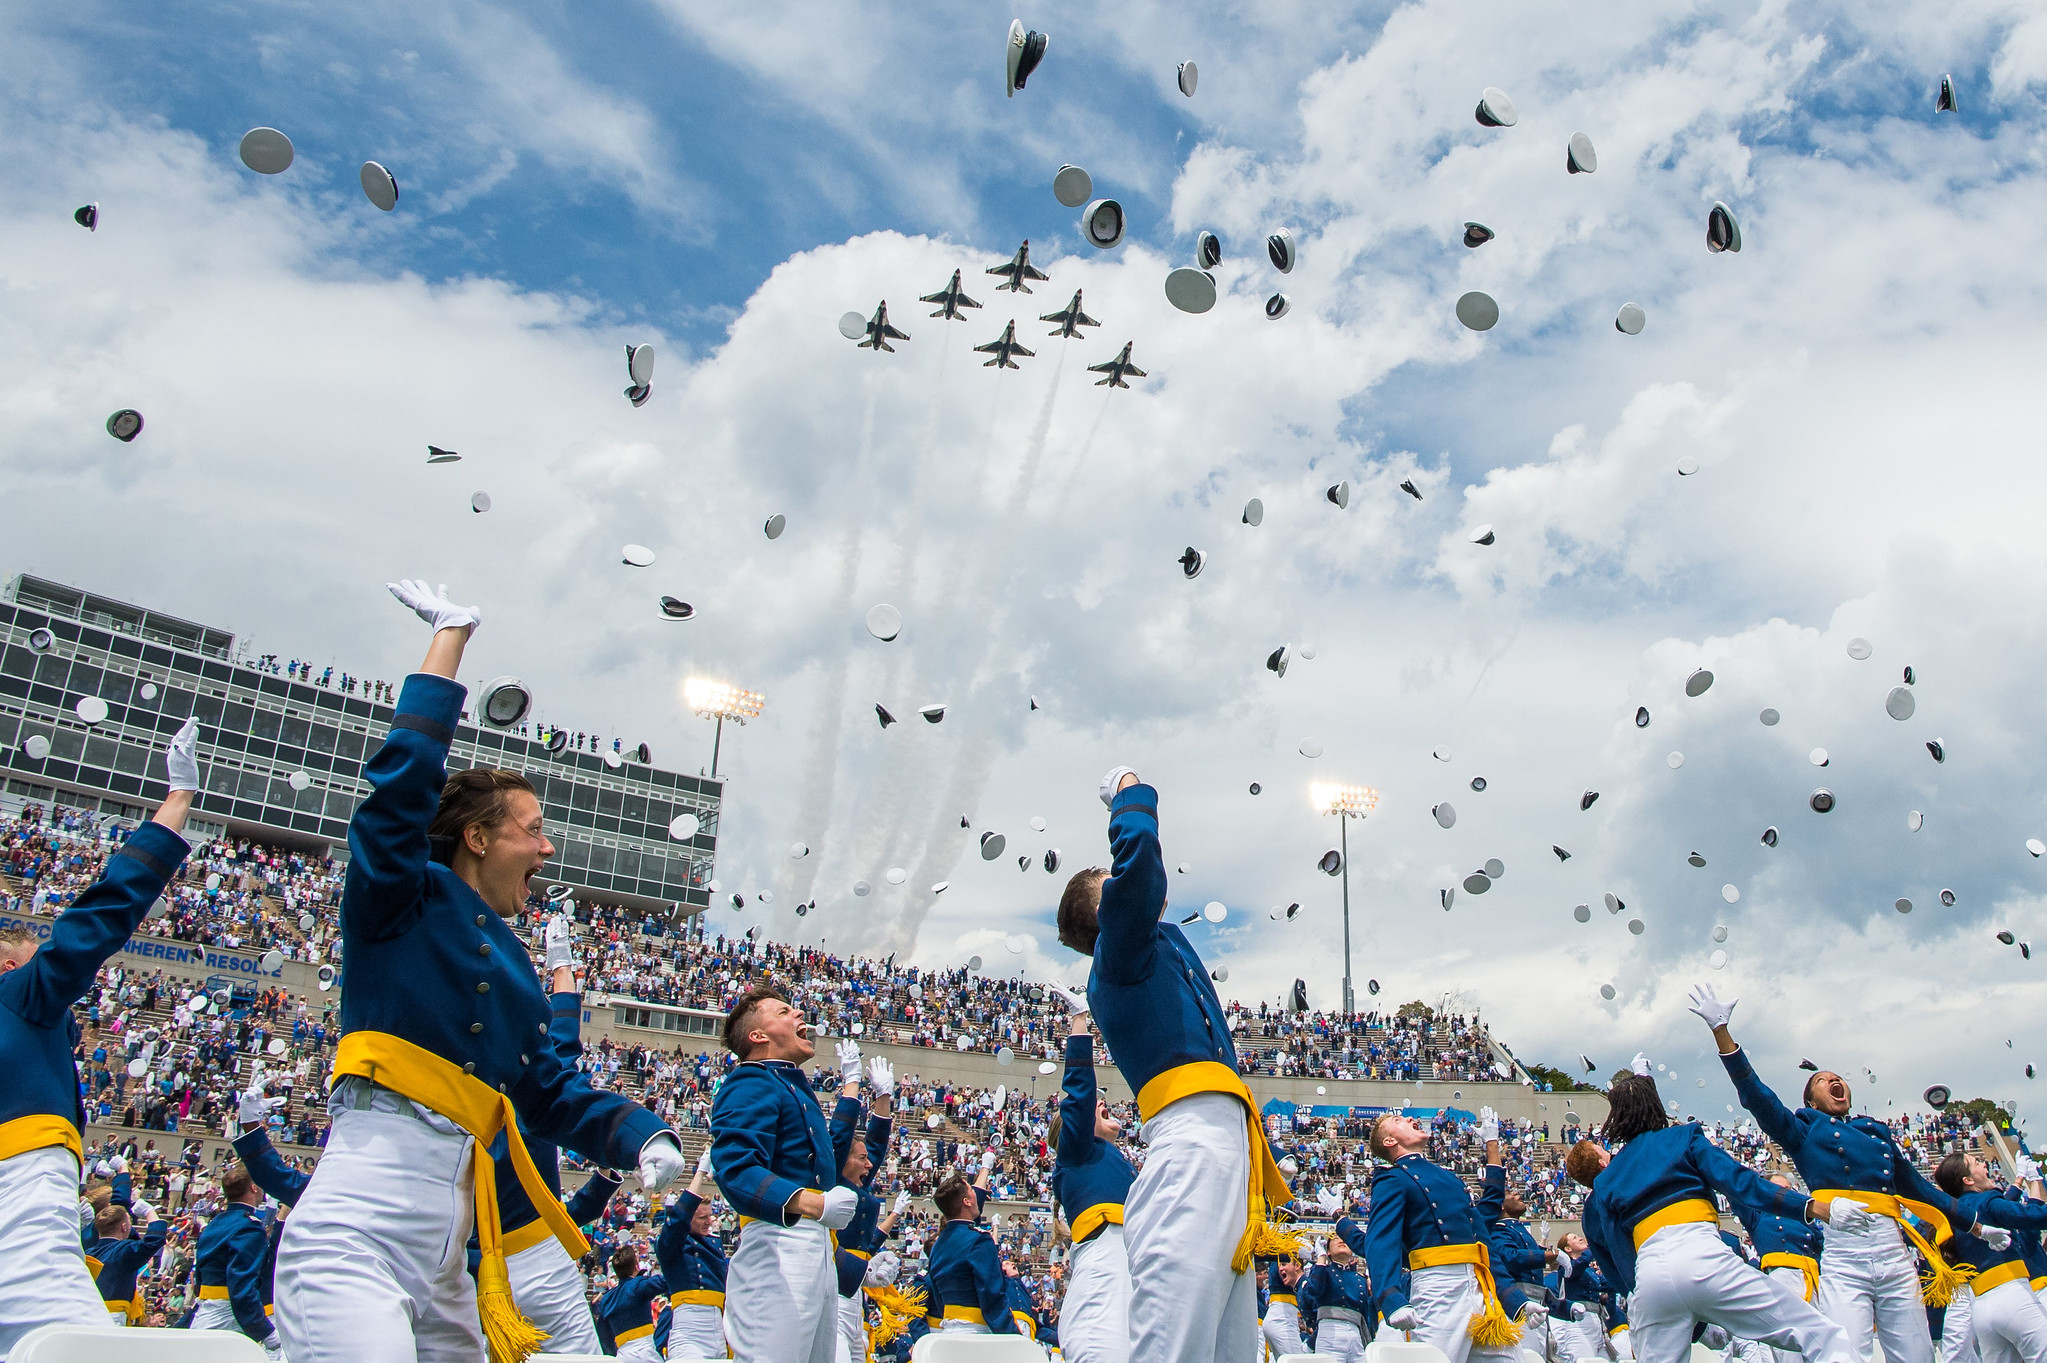 The U.S. Air Force Academy Class of 2021 graduates toss their hats skyward as the U.S. Air Force Thunderbirds roar overhead during the graduation ceremony in Colorado Springs, Colo., May 26, 2021. One-thousand-nineteen cadets crossed the stage to become the Air Force/Space Force's newest second lieutenants. (Trevor Cokley/Air Force)